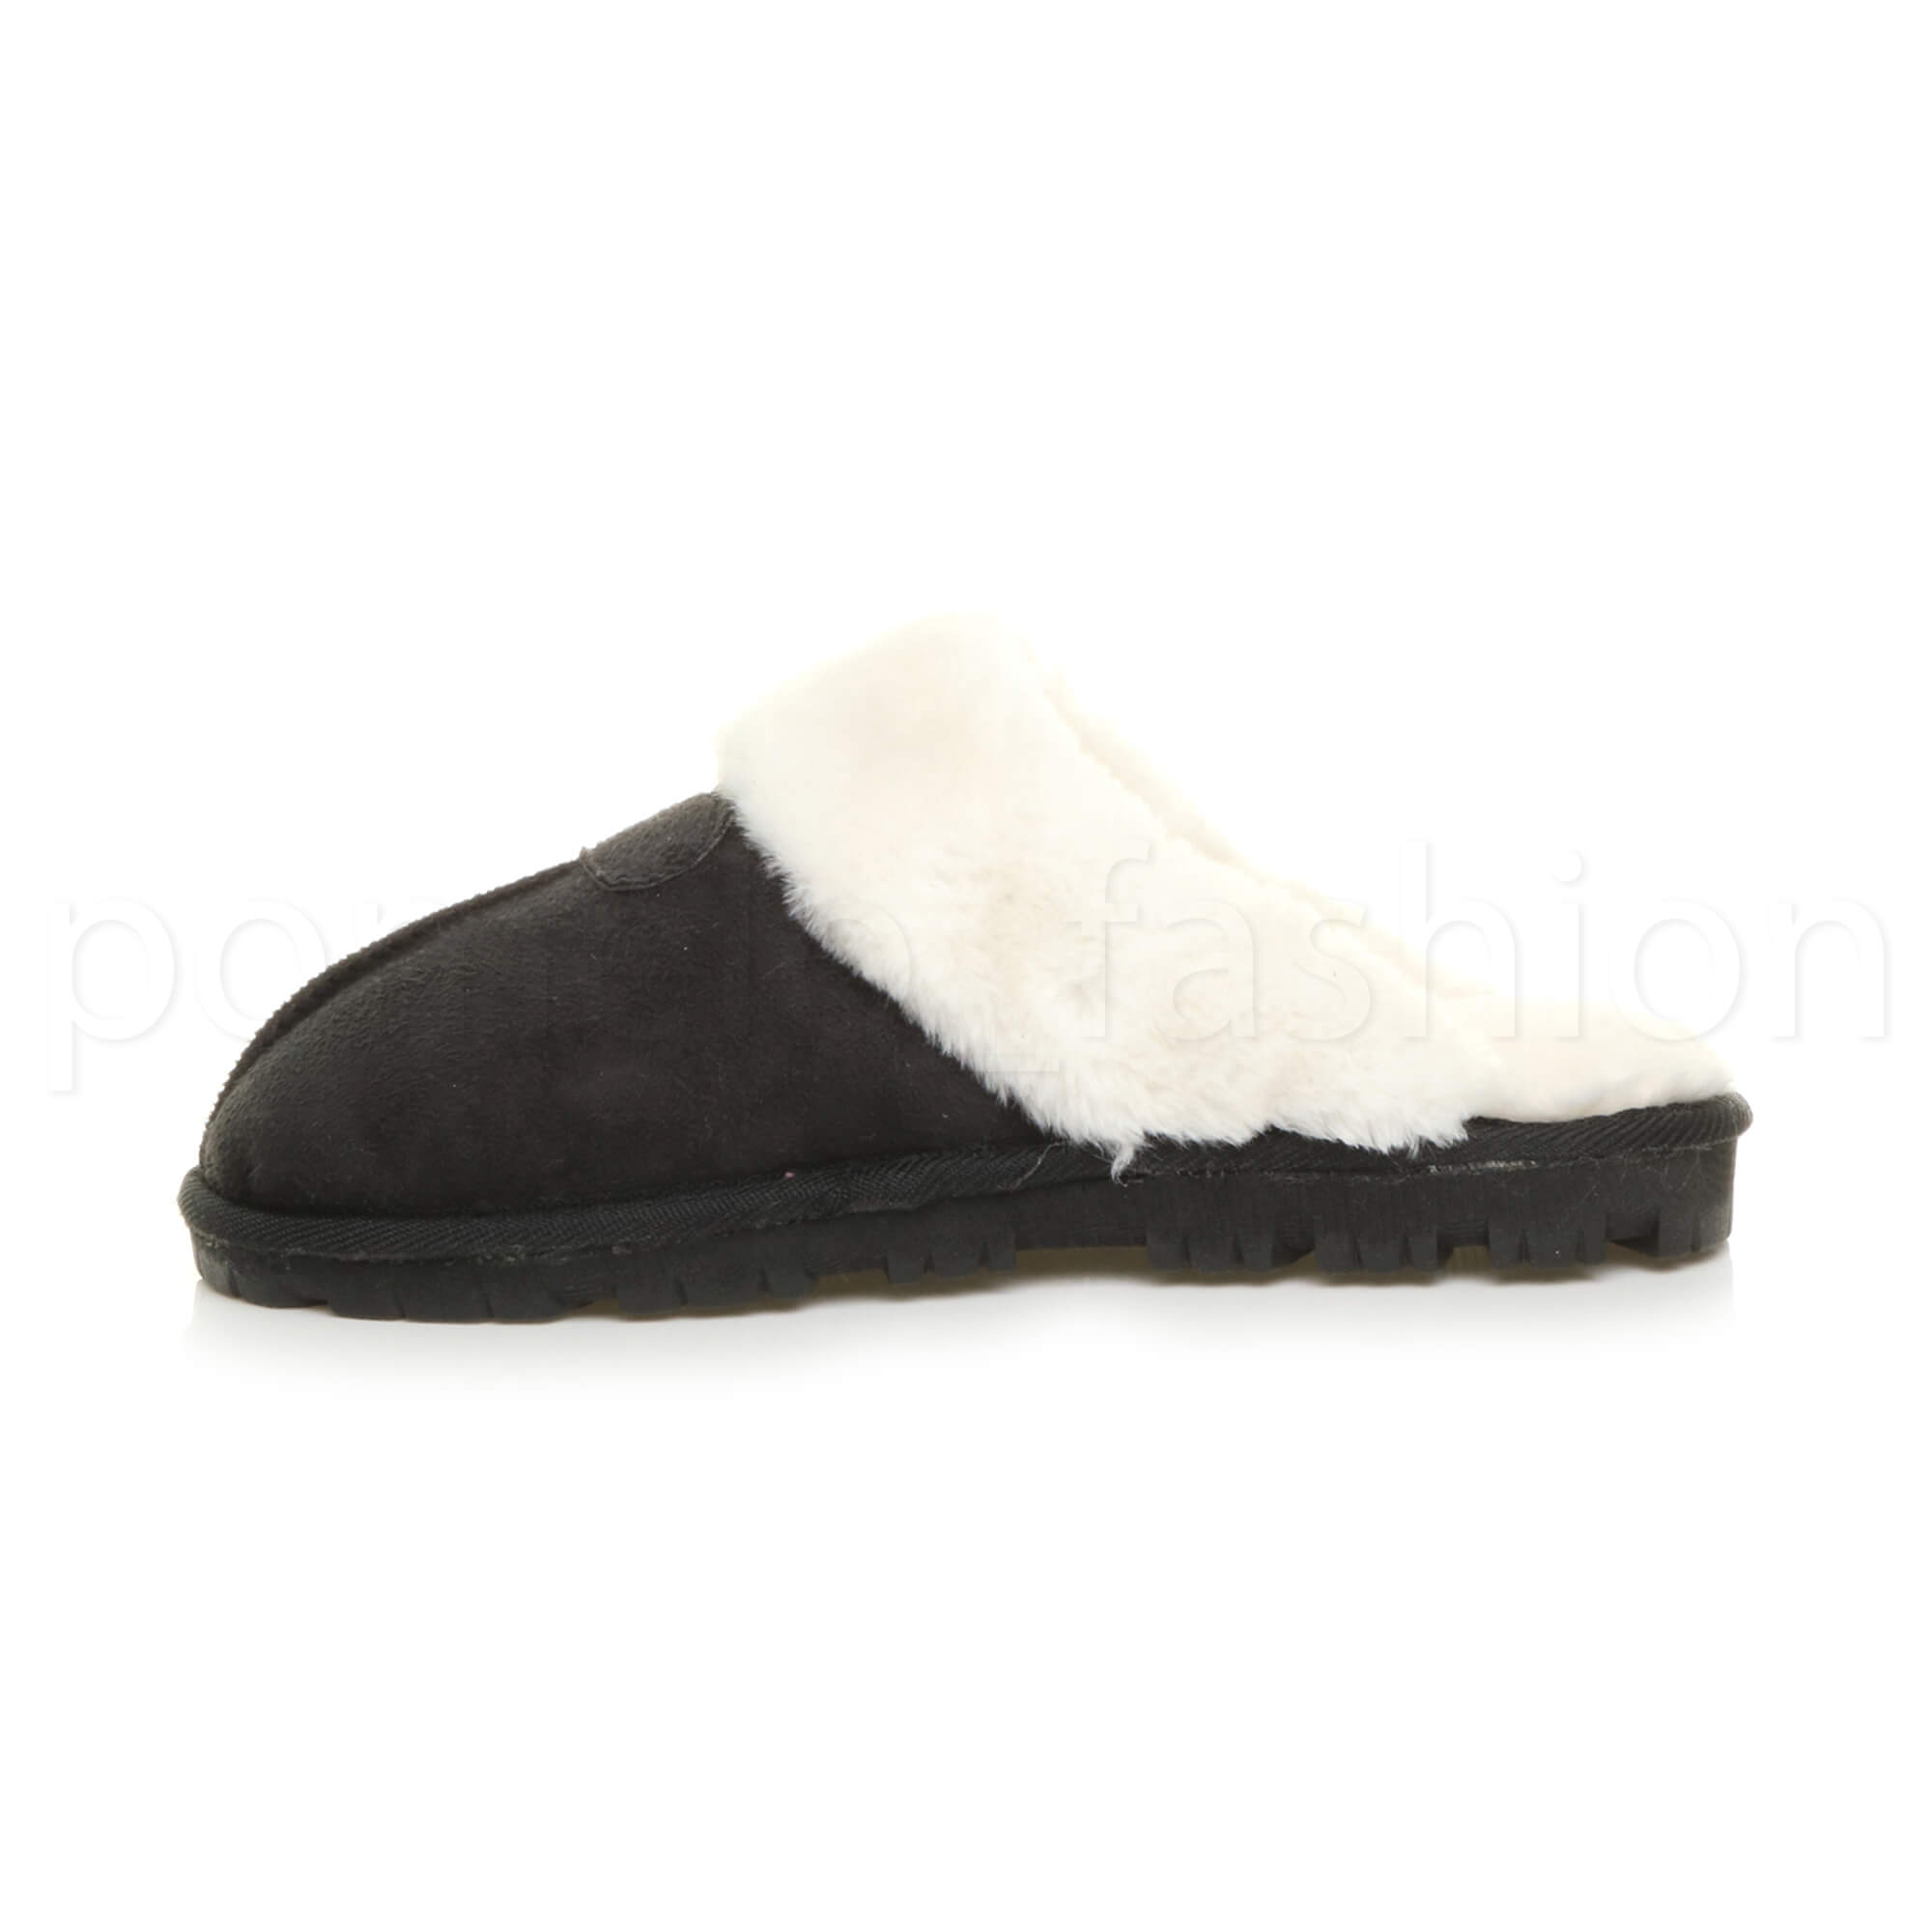 WOMENS-LADIES-FLAT-FUR-LINED-COMFORTABLE-WINTER-MULES-SLIPPERS-HOUSE-SHOES-SIZE thumbnail 25